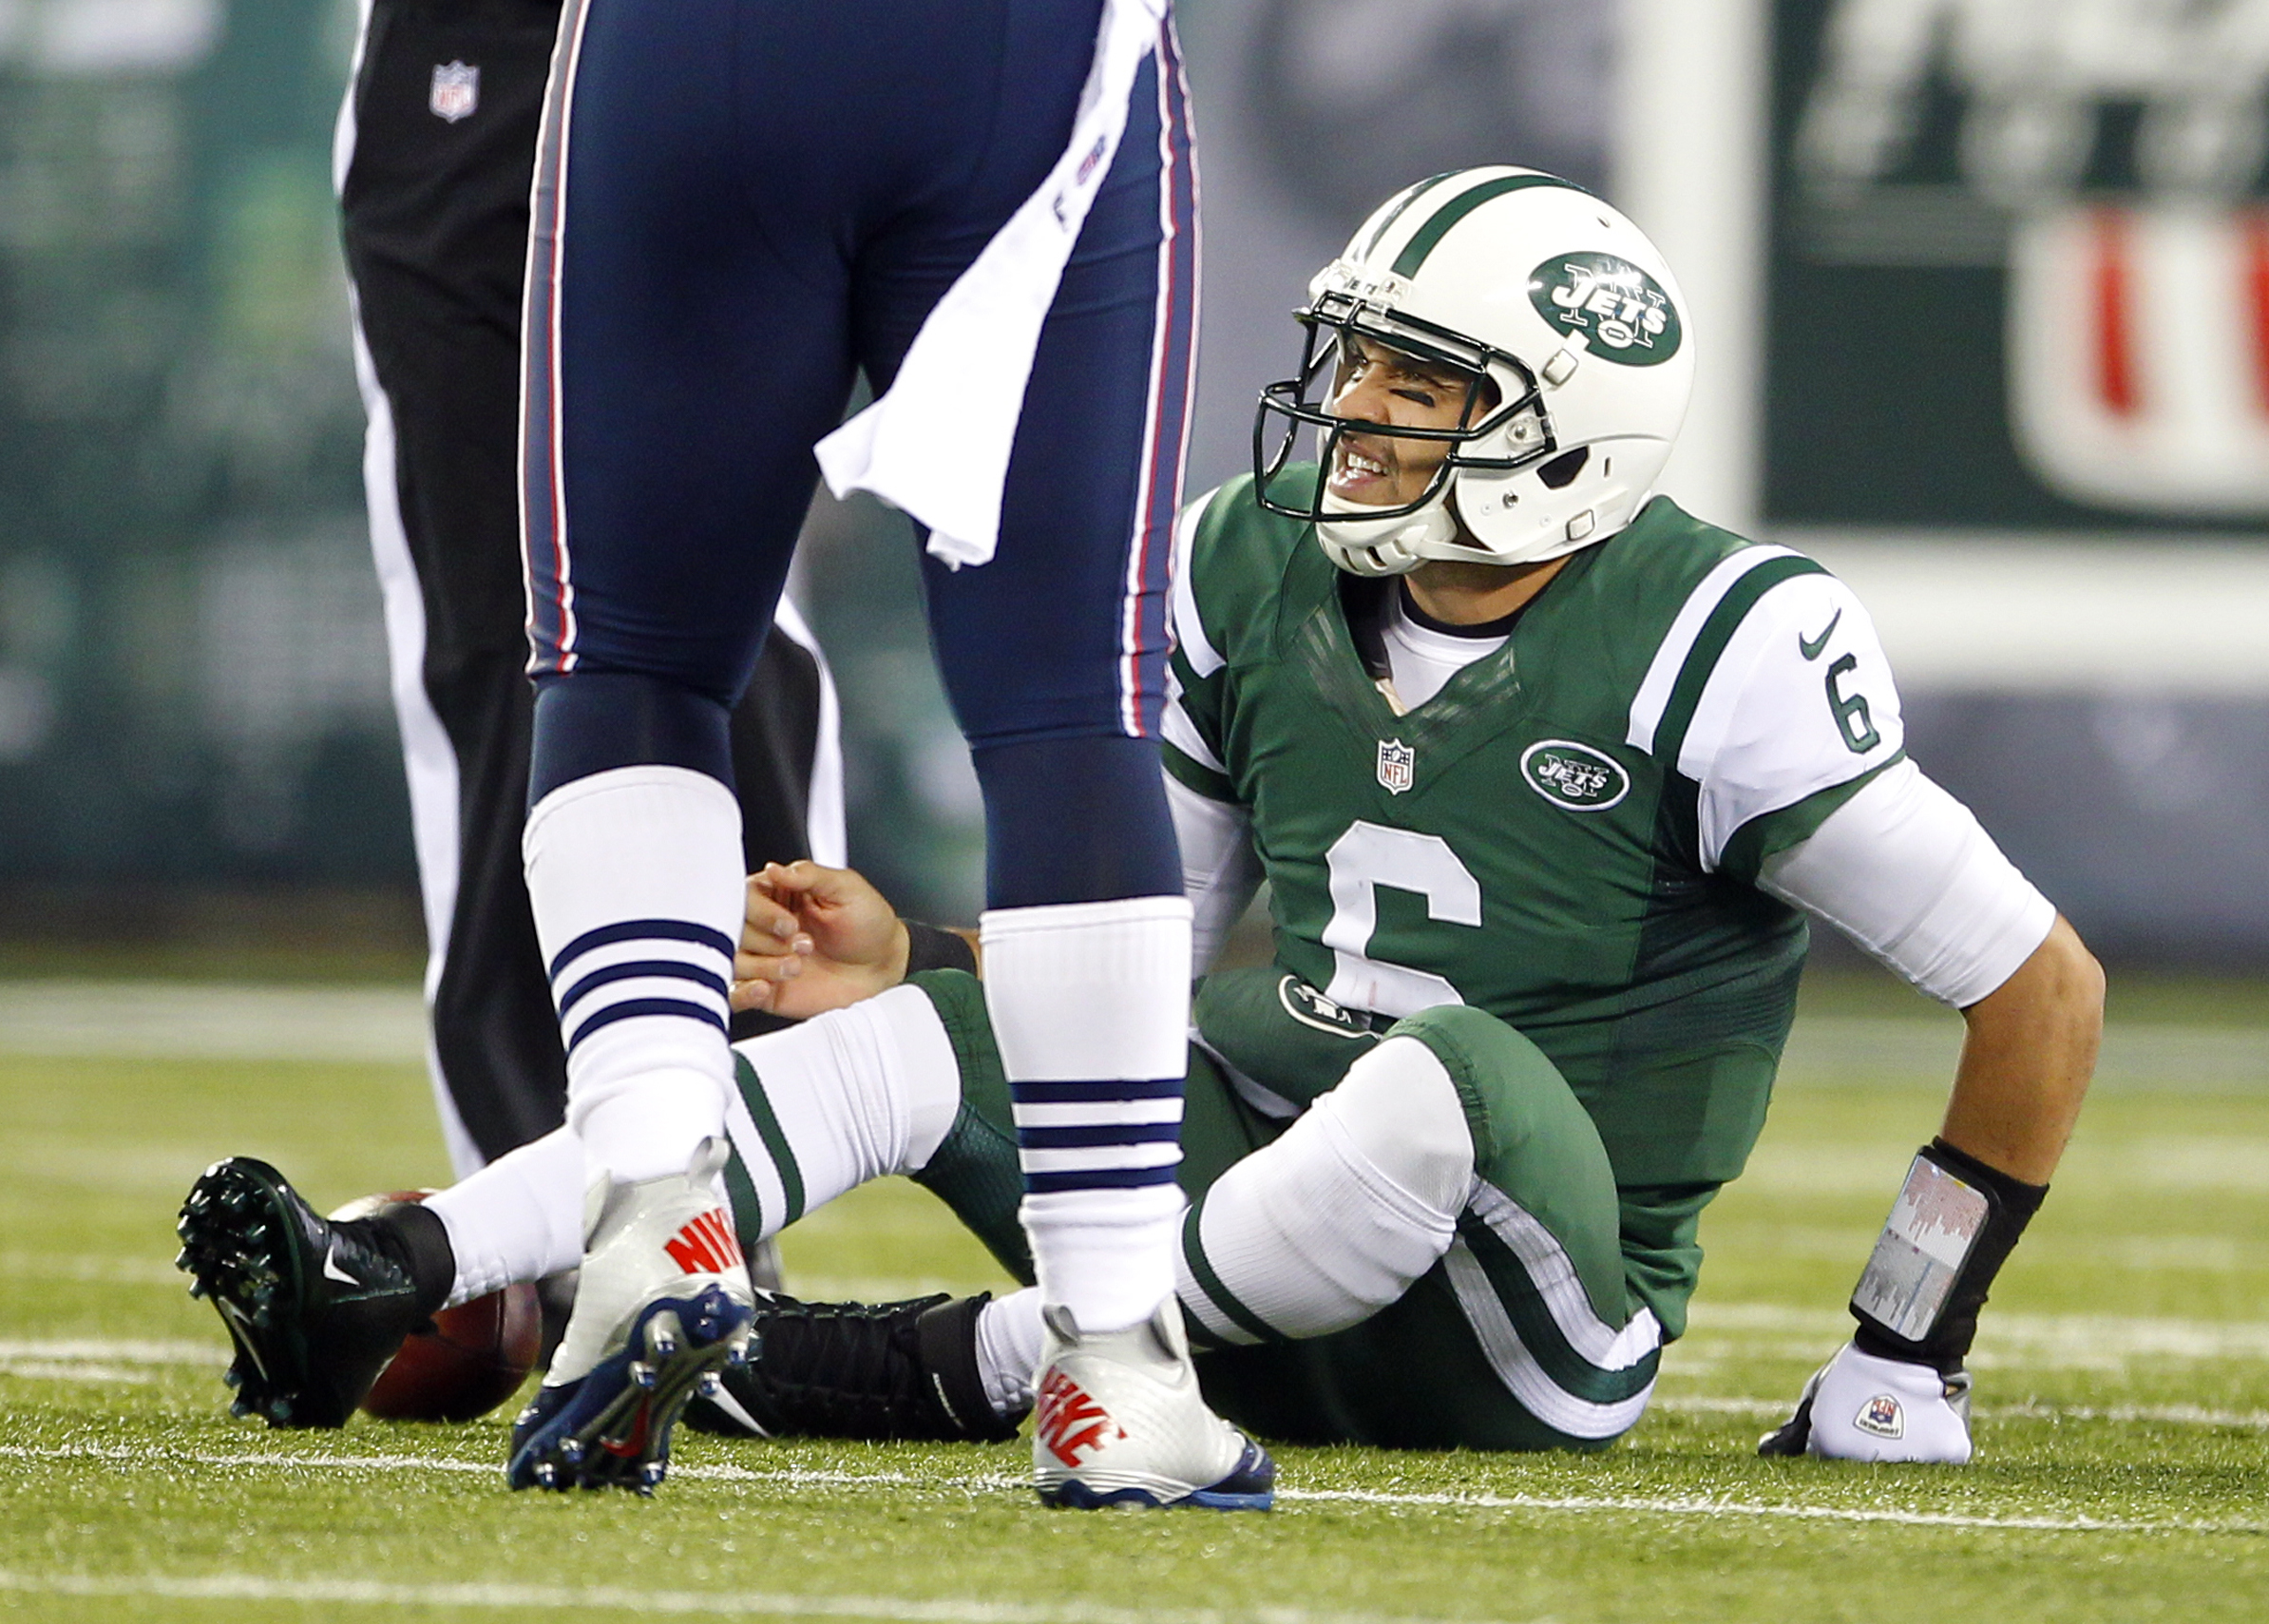 Former Jets QB Mark Sanchez retires from NFL, will be lead college football analyst